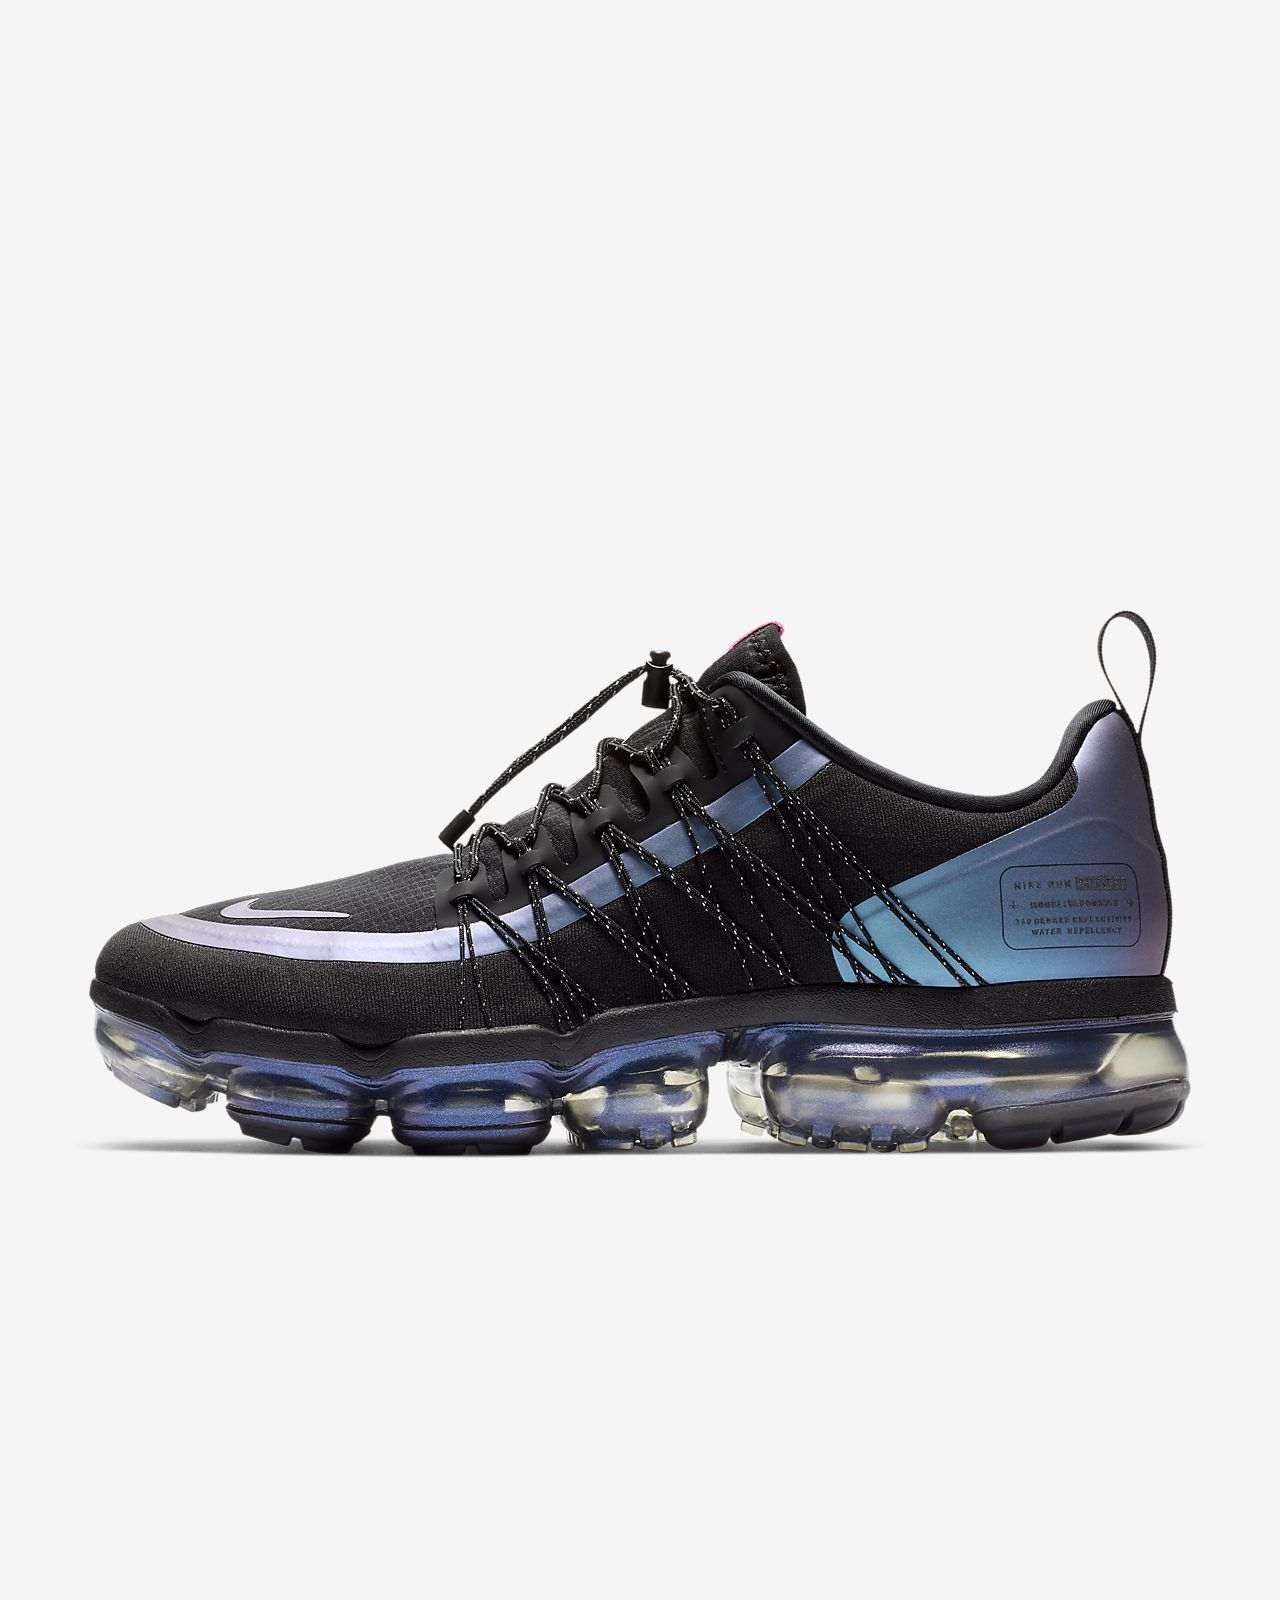 951ef9685e0 Nike Air VaporMax Utility Men s Shoe. Nike.com GB